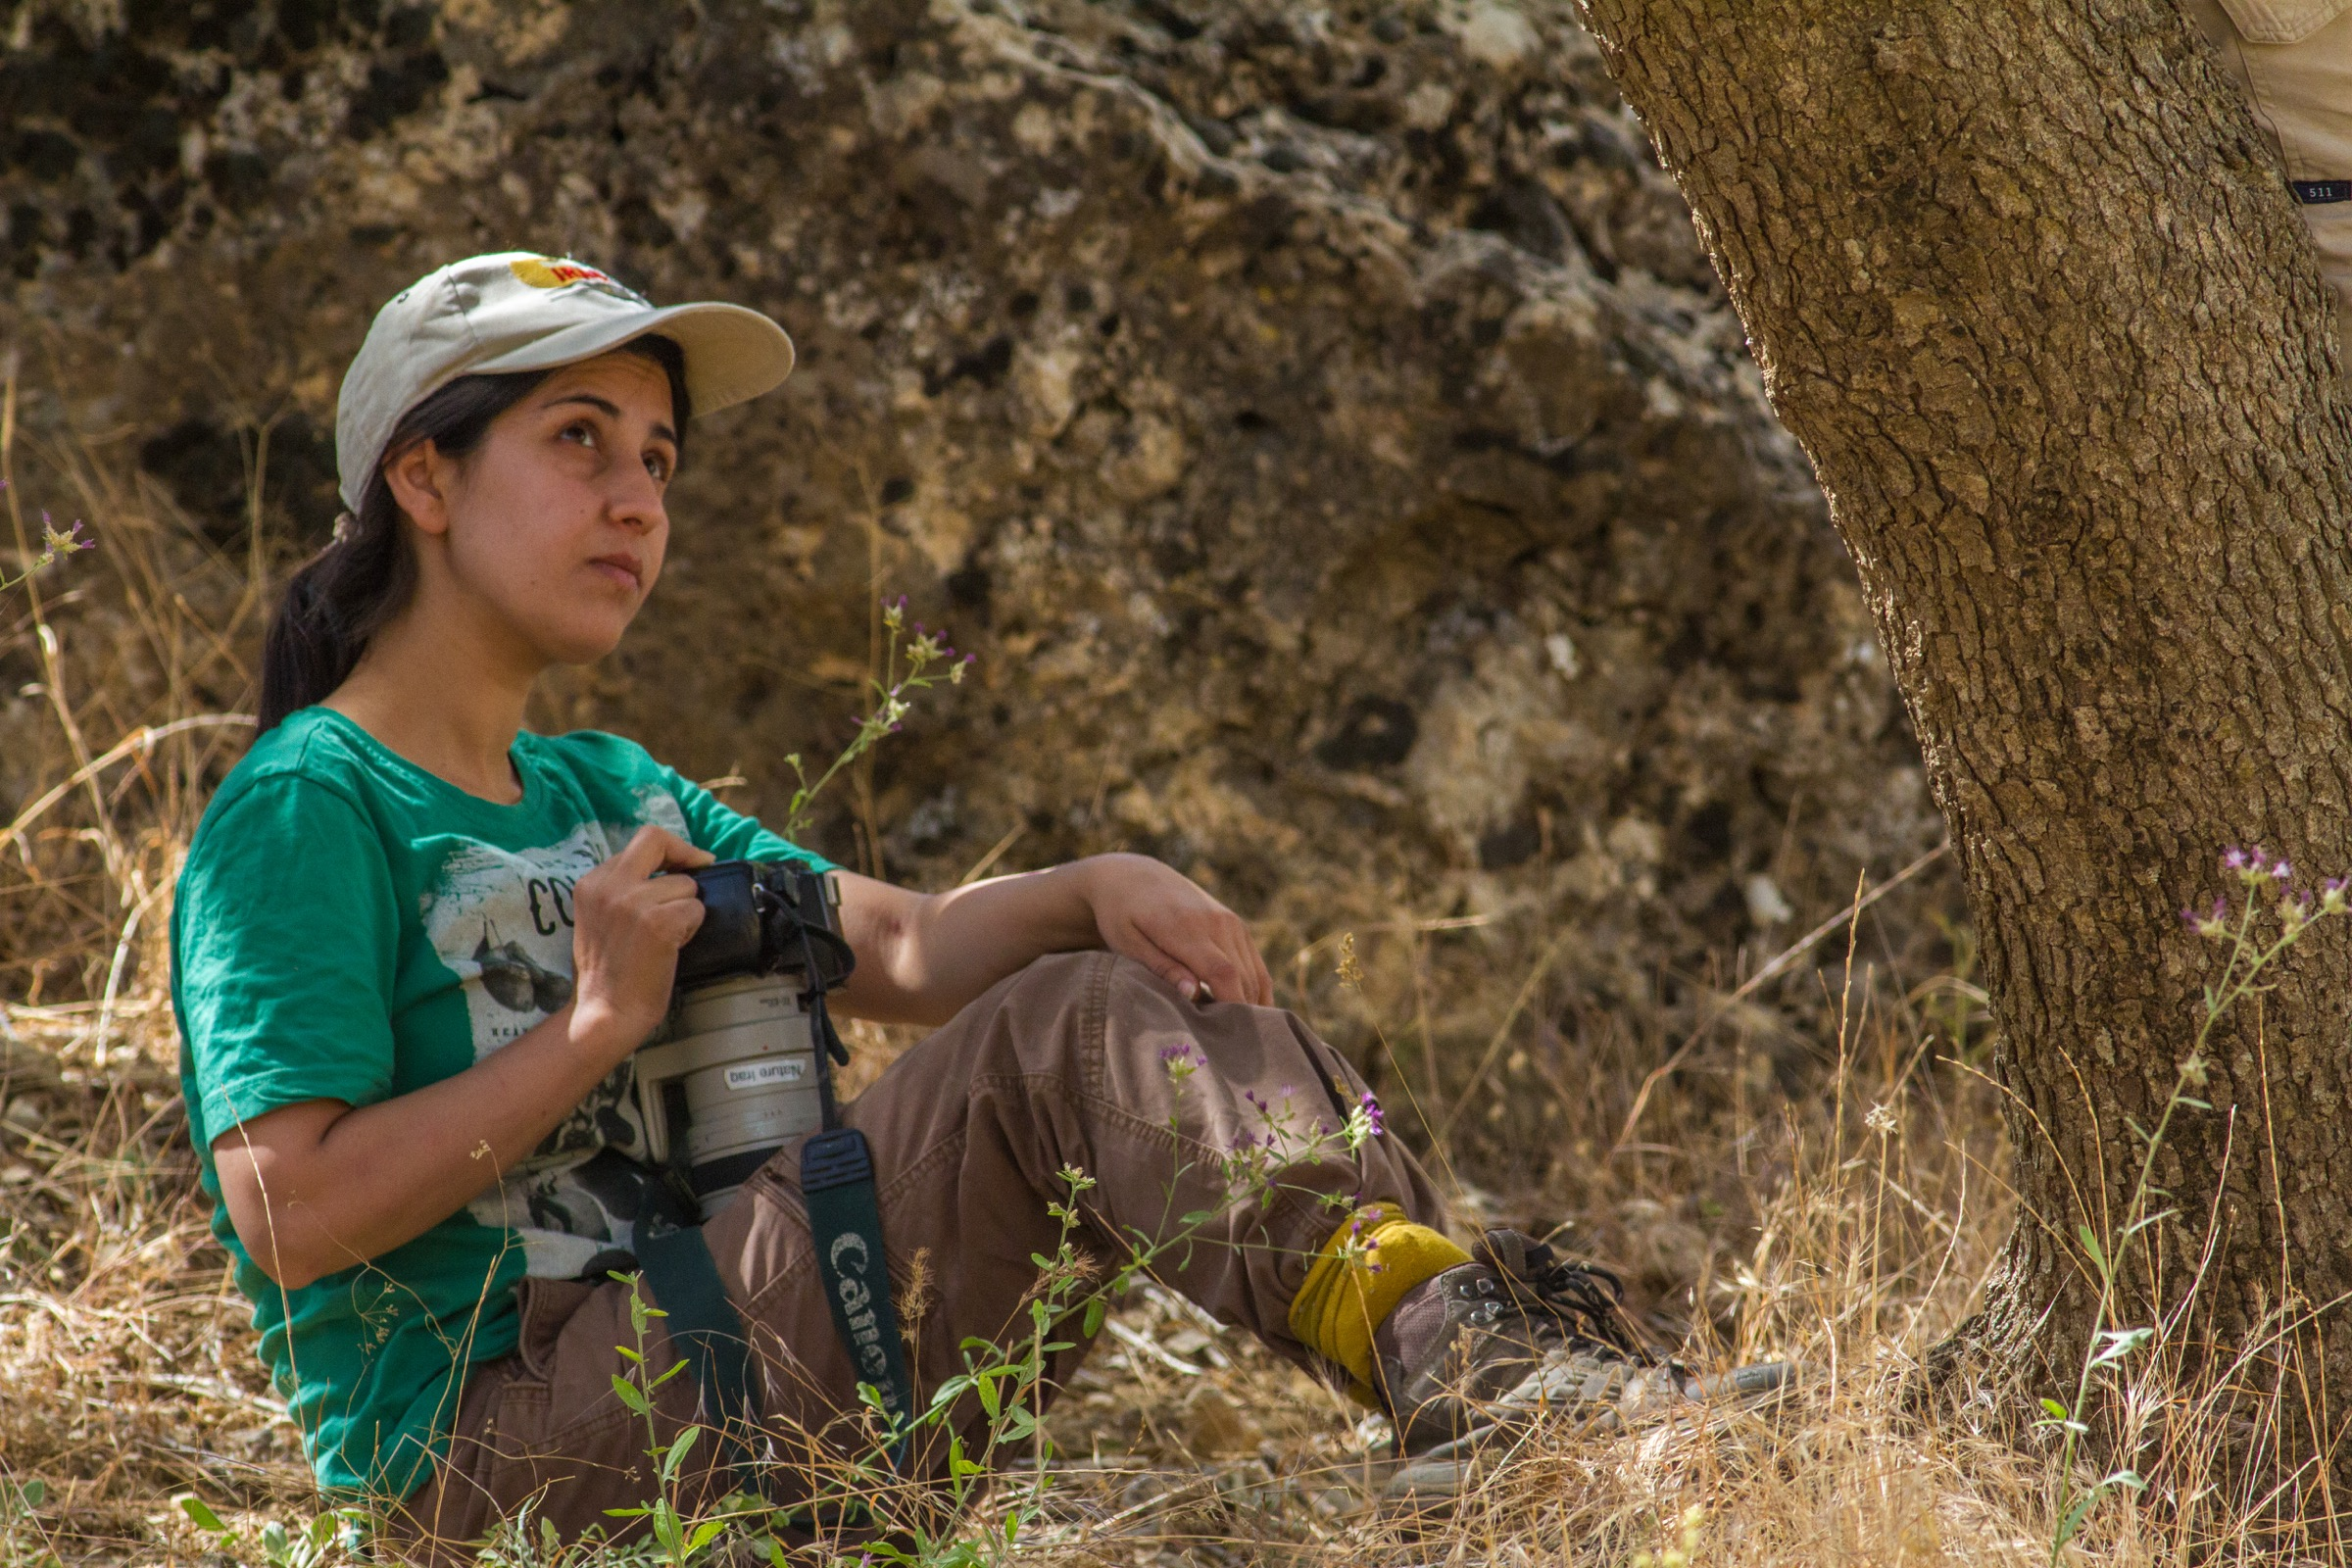 Pragmatic and a little bit fierce, Hana Raza remains undeterred by the countless challenges that come with conservation work in Iraq. Photograph by Korsh Ararat